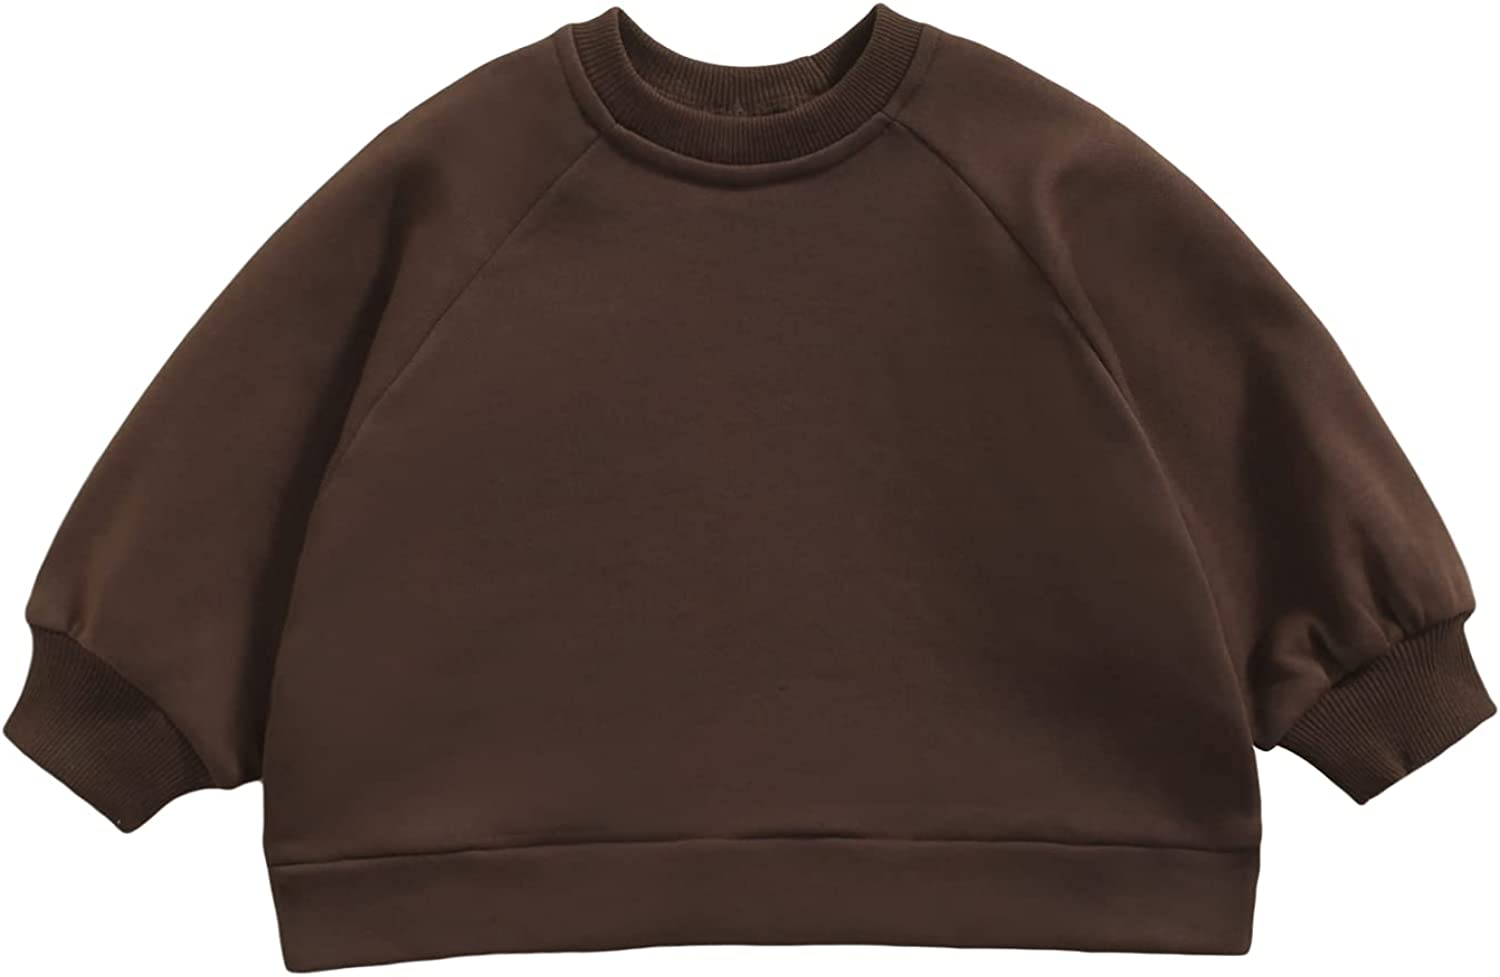 Boys' Baby Pullover Sweater Round Neck with Raglan Sleeves Solid Color Loose Version Spring Clothing